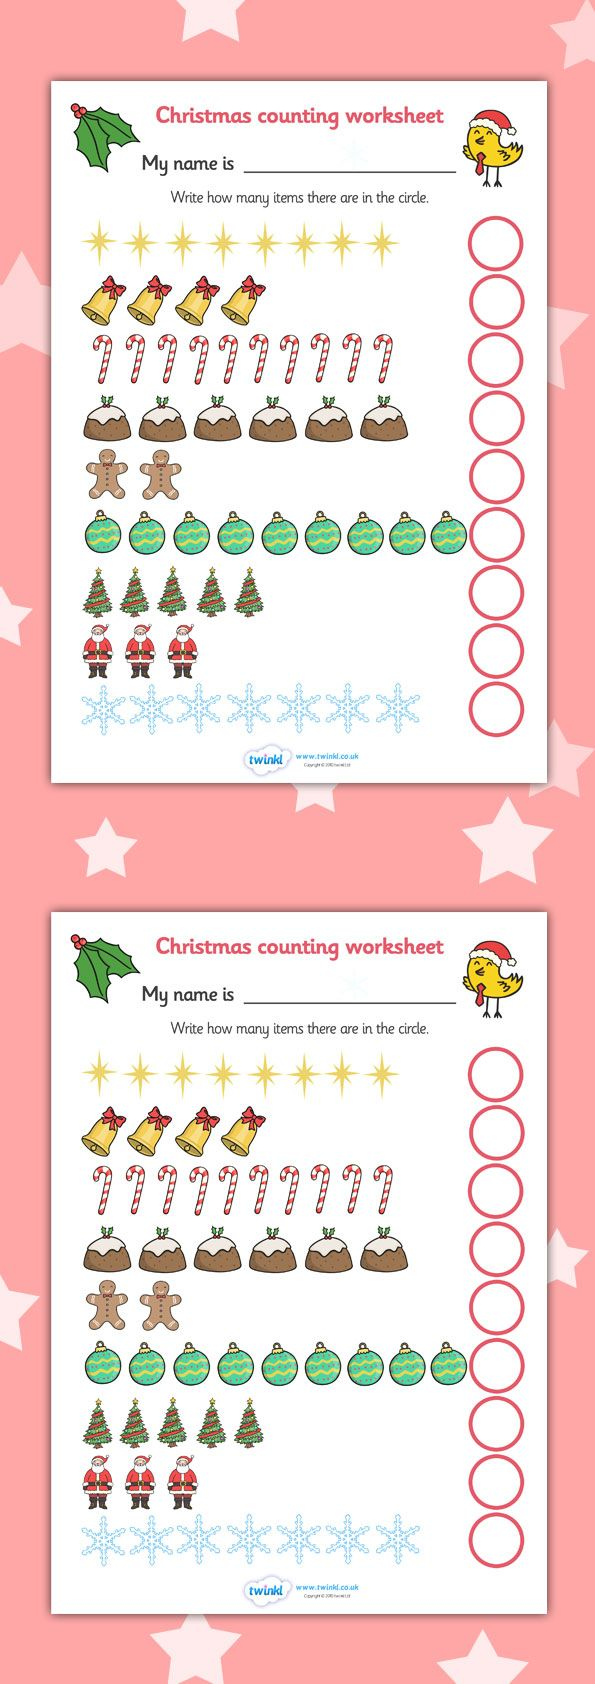 Twinkl Resources >> Counting at Christmas Worksheet  >> Classroom printables for Pre-School, Kindergarten, Elementary School and beyond! Math, Numbers, Counting, Worksheets, Activities, Christmas